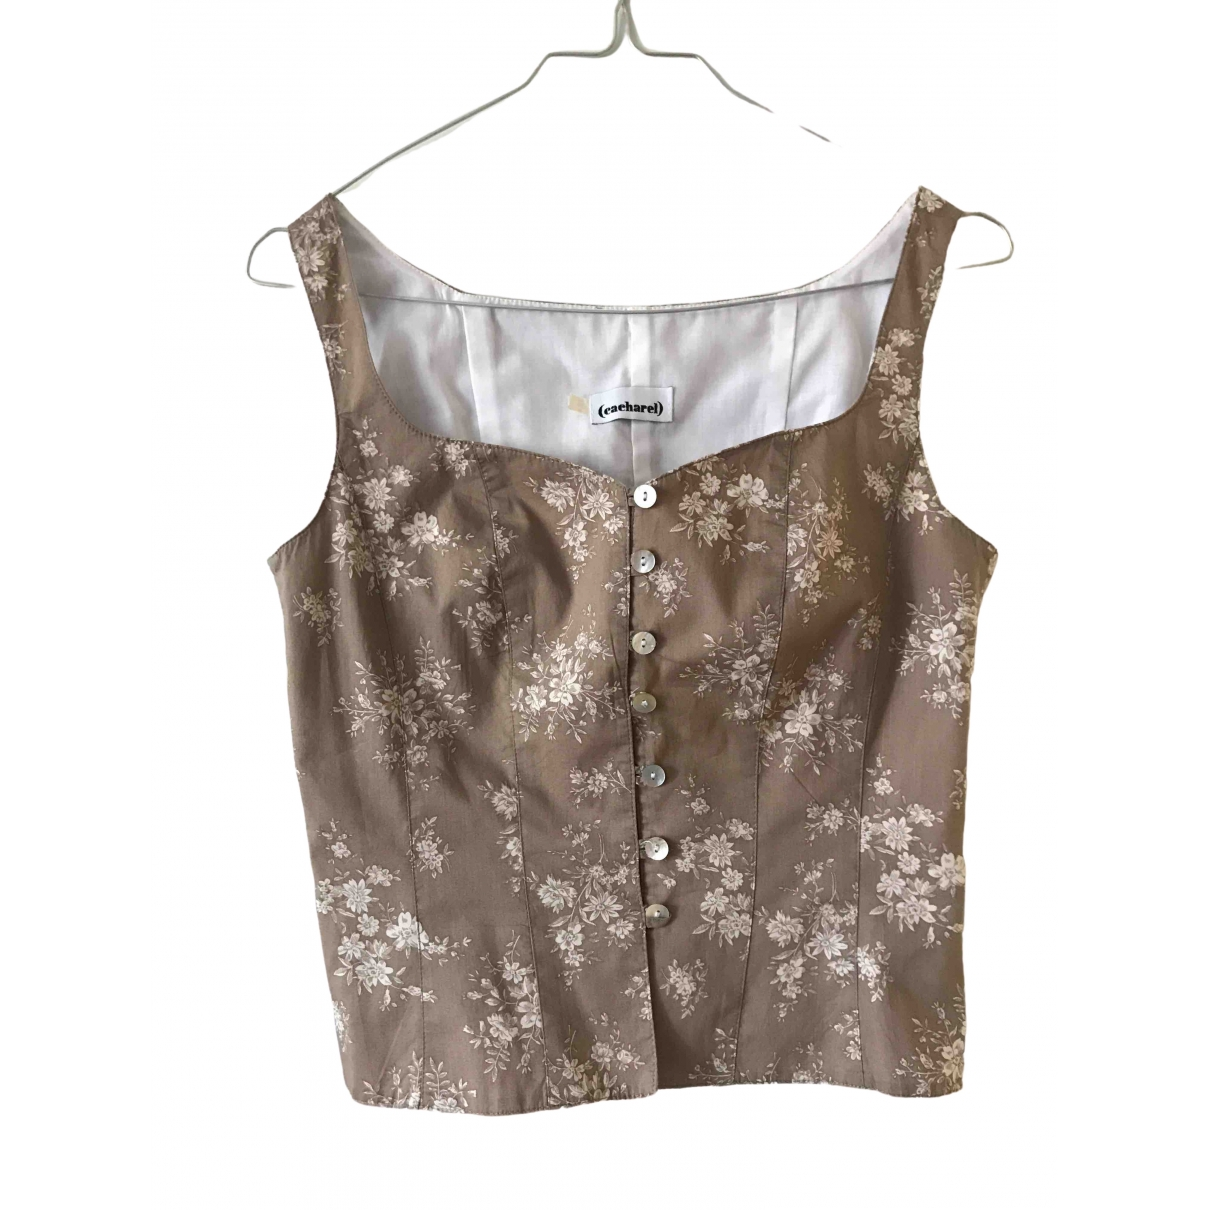 Cacharel \N Beige Cotton  top for Women 36 FR